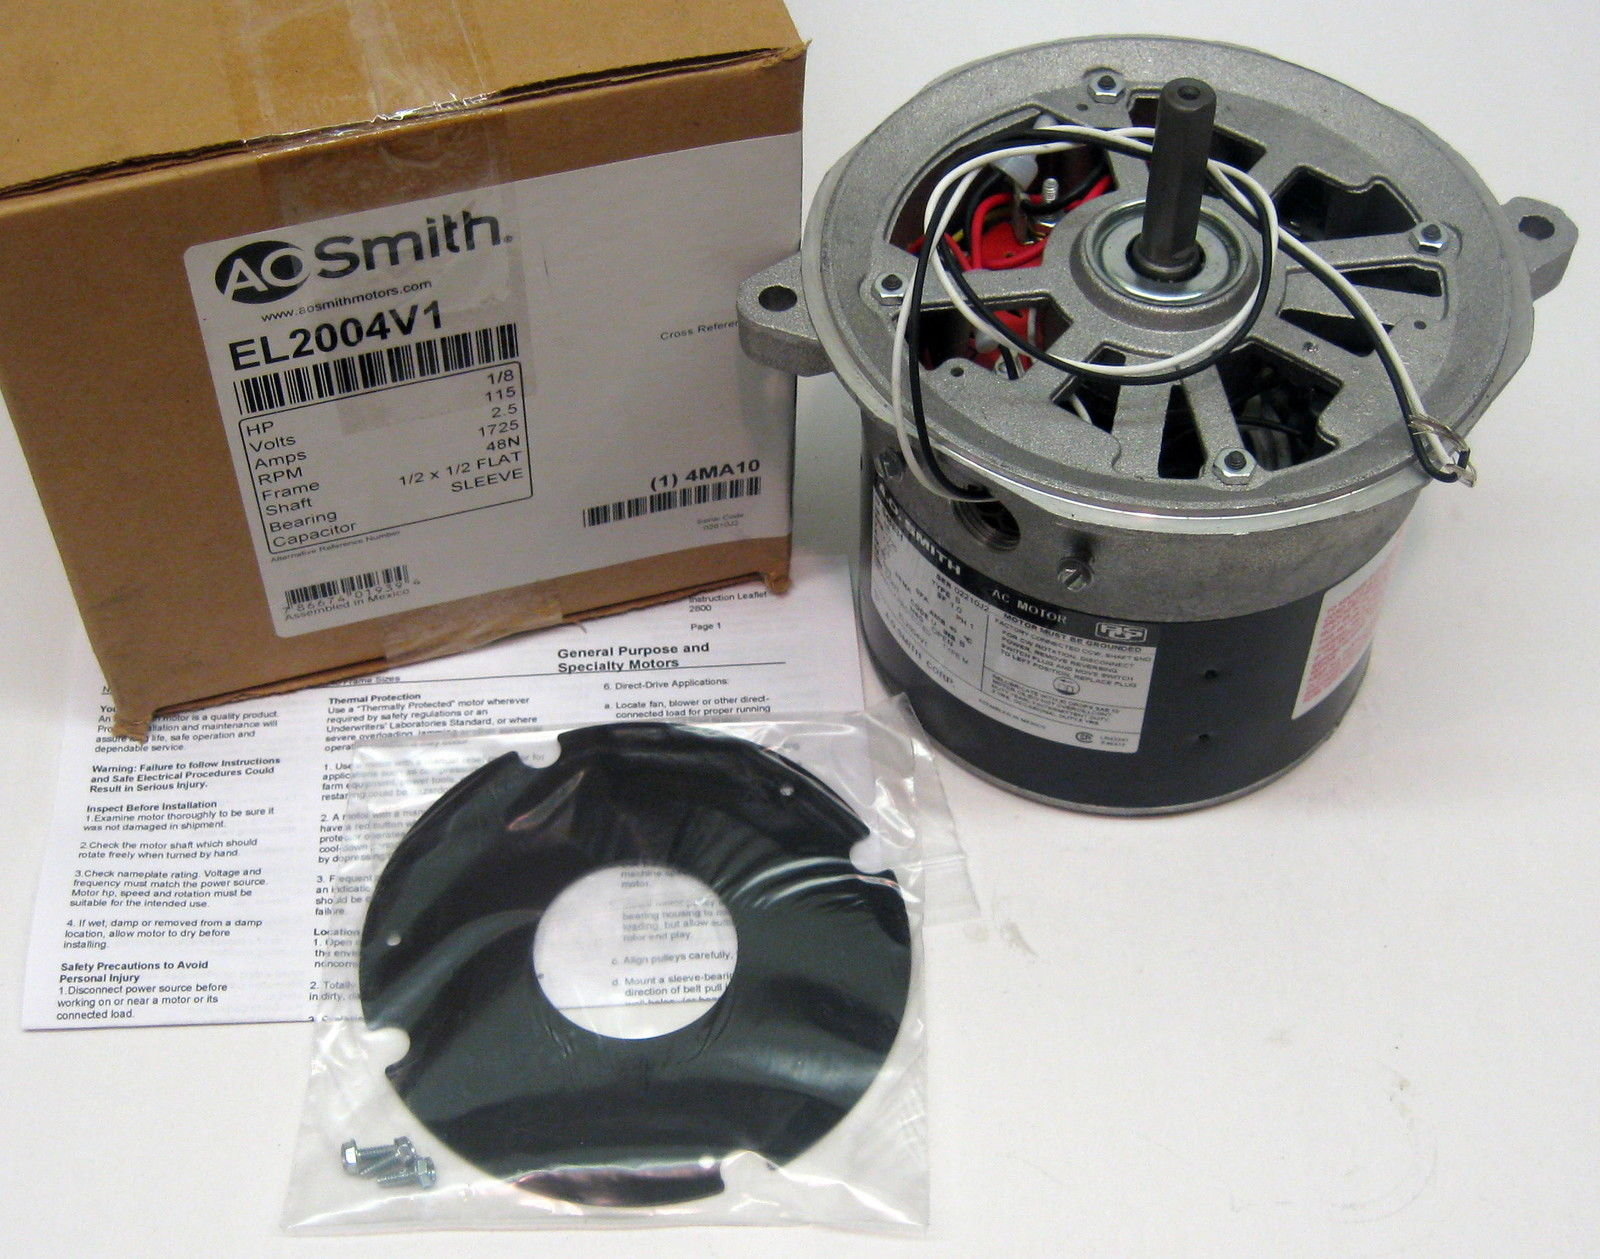 El2004v1 Ao Smith Oil Burner Furnace Motor 1 8 Hp 1725 Rpm